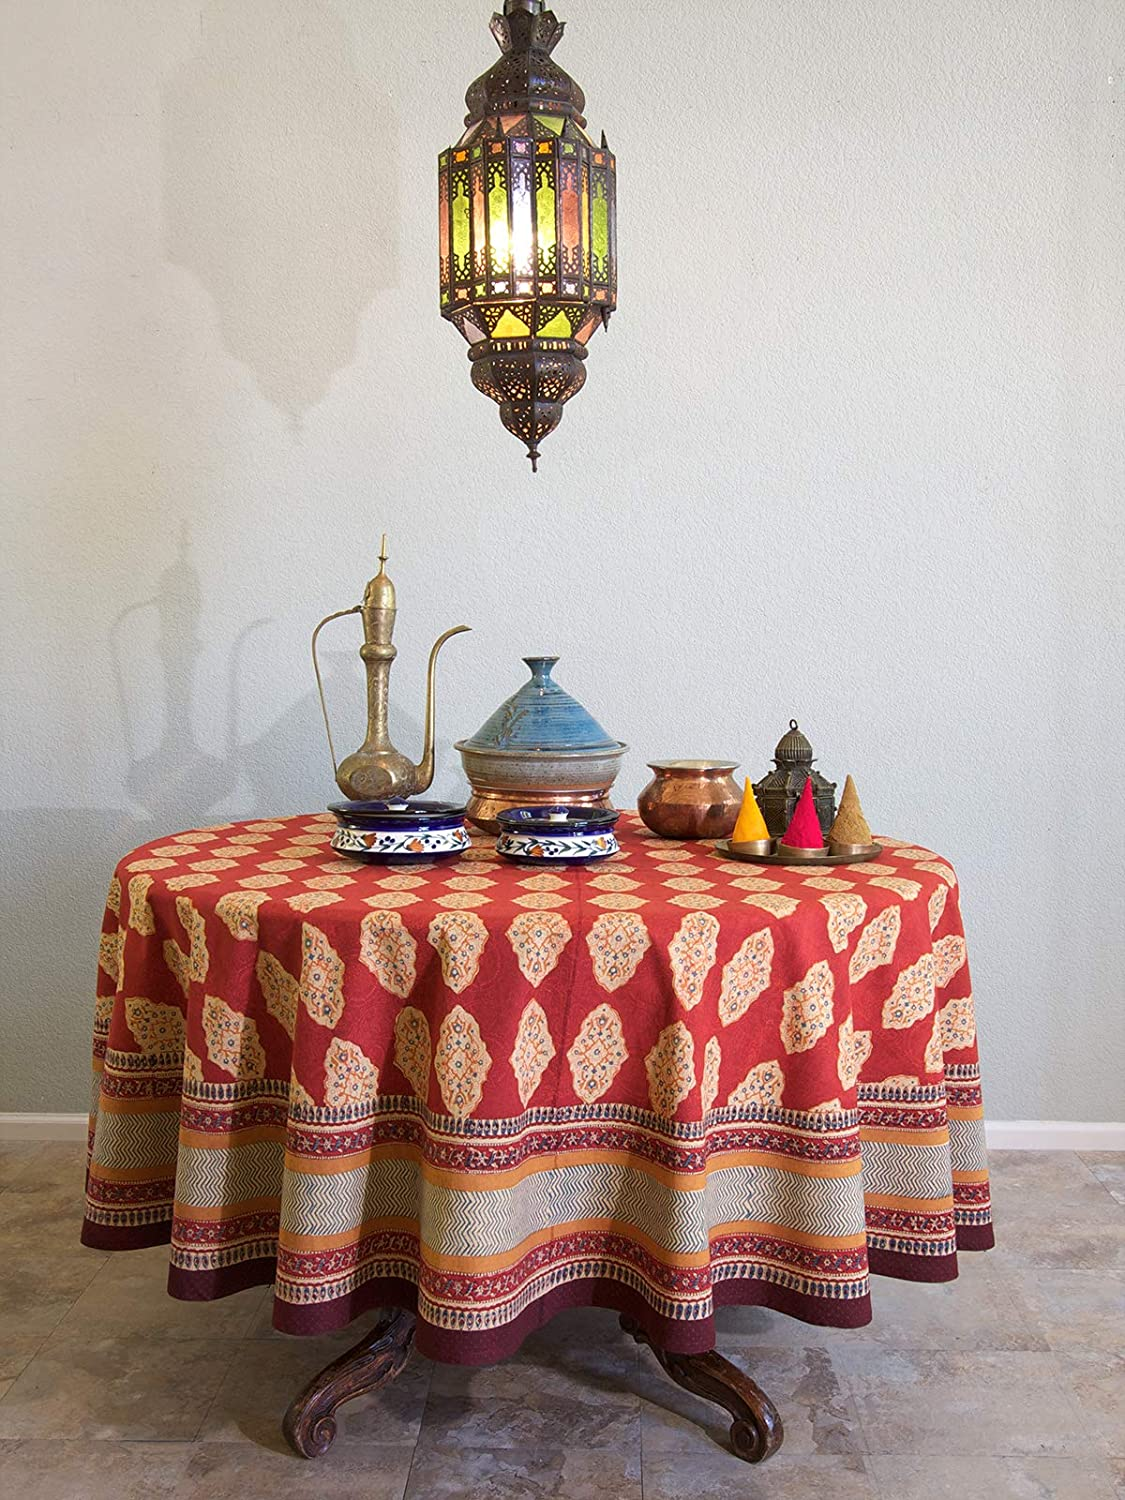 Saffron Marigold 90 Round Spice Route Cotton Tablecloth | Red Orange Moroccan Indian Print Bohemian Table Cover